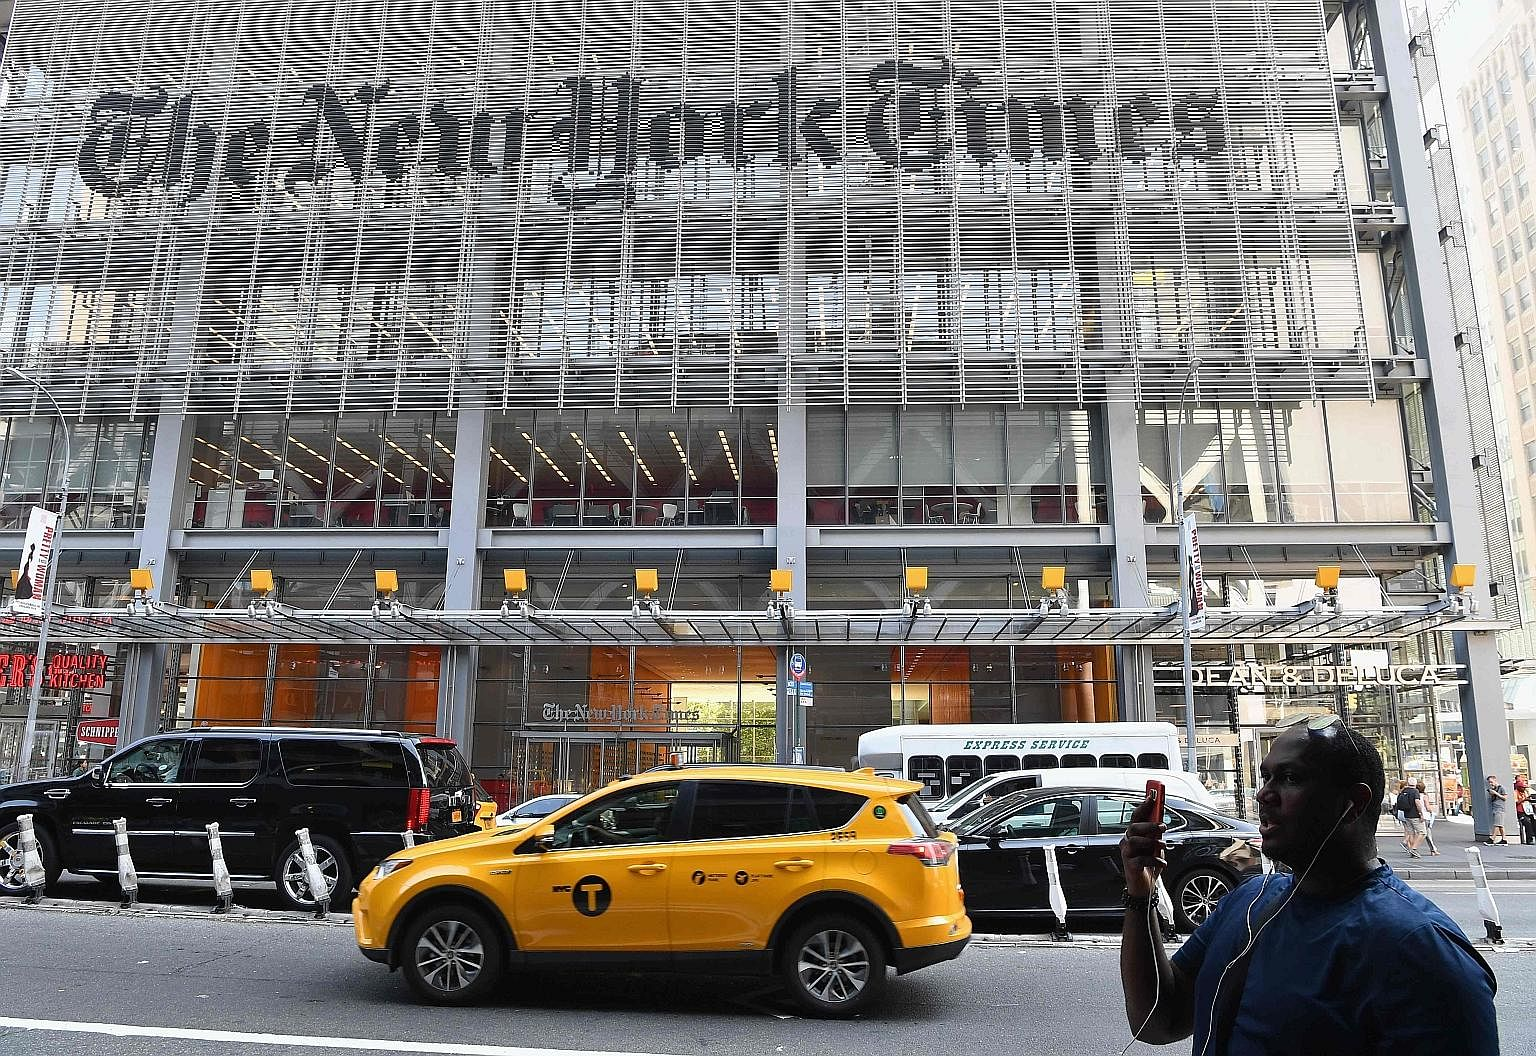 In the first quarter of this year, The New York Times added 587,000 digital subscriptions - more than all of the 100 newspapers owned by Gannett, the largest US print publisher. The pandemic, the writers say, has exposed the growing divide between a